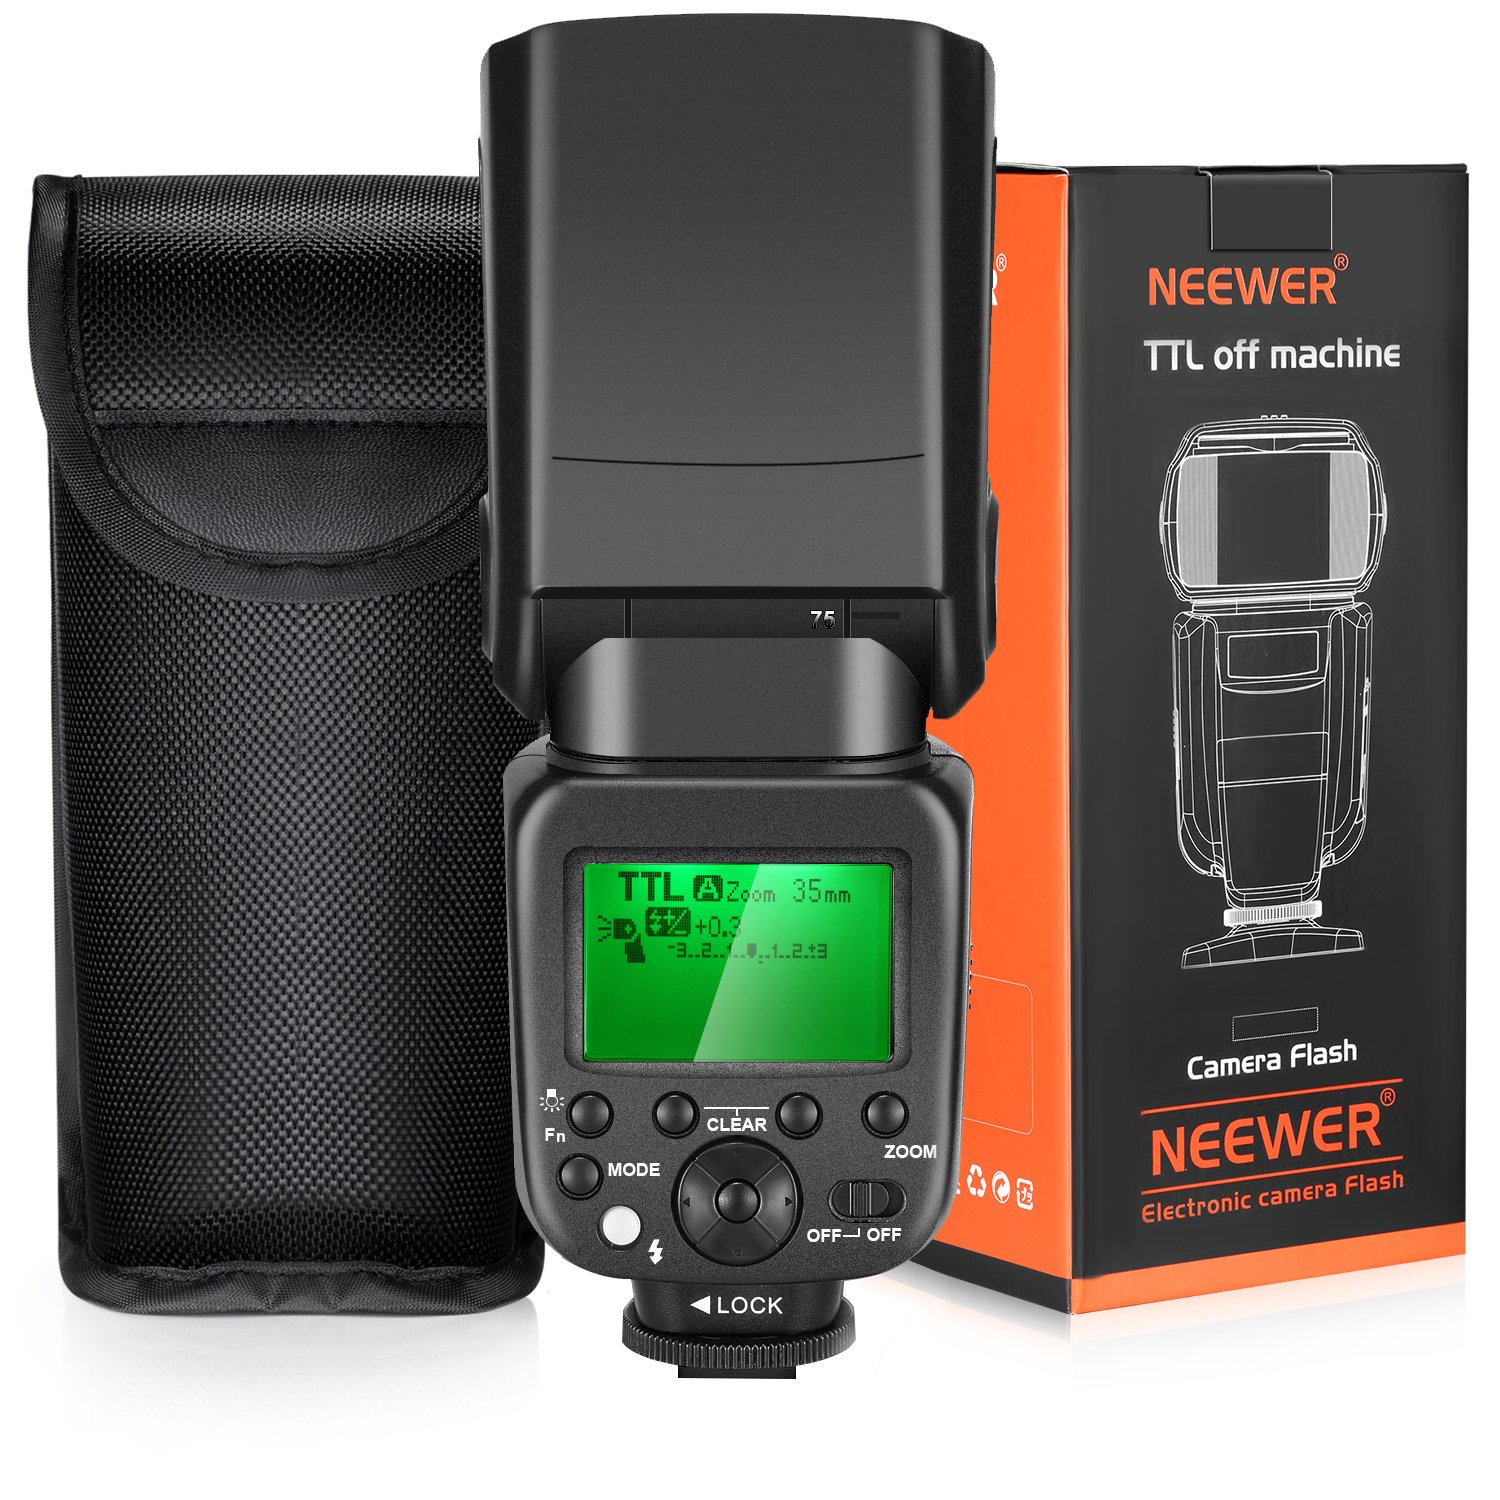 Neewer TTL Flash for Sony HSS 1/8000s GN58 Master Slave Speedlite for Alpha A6000 A6300 A6500 A7 A7R Camera, Integrated 2.4G Wireless (NW630) by Neewer